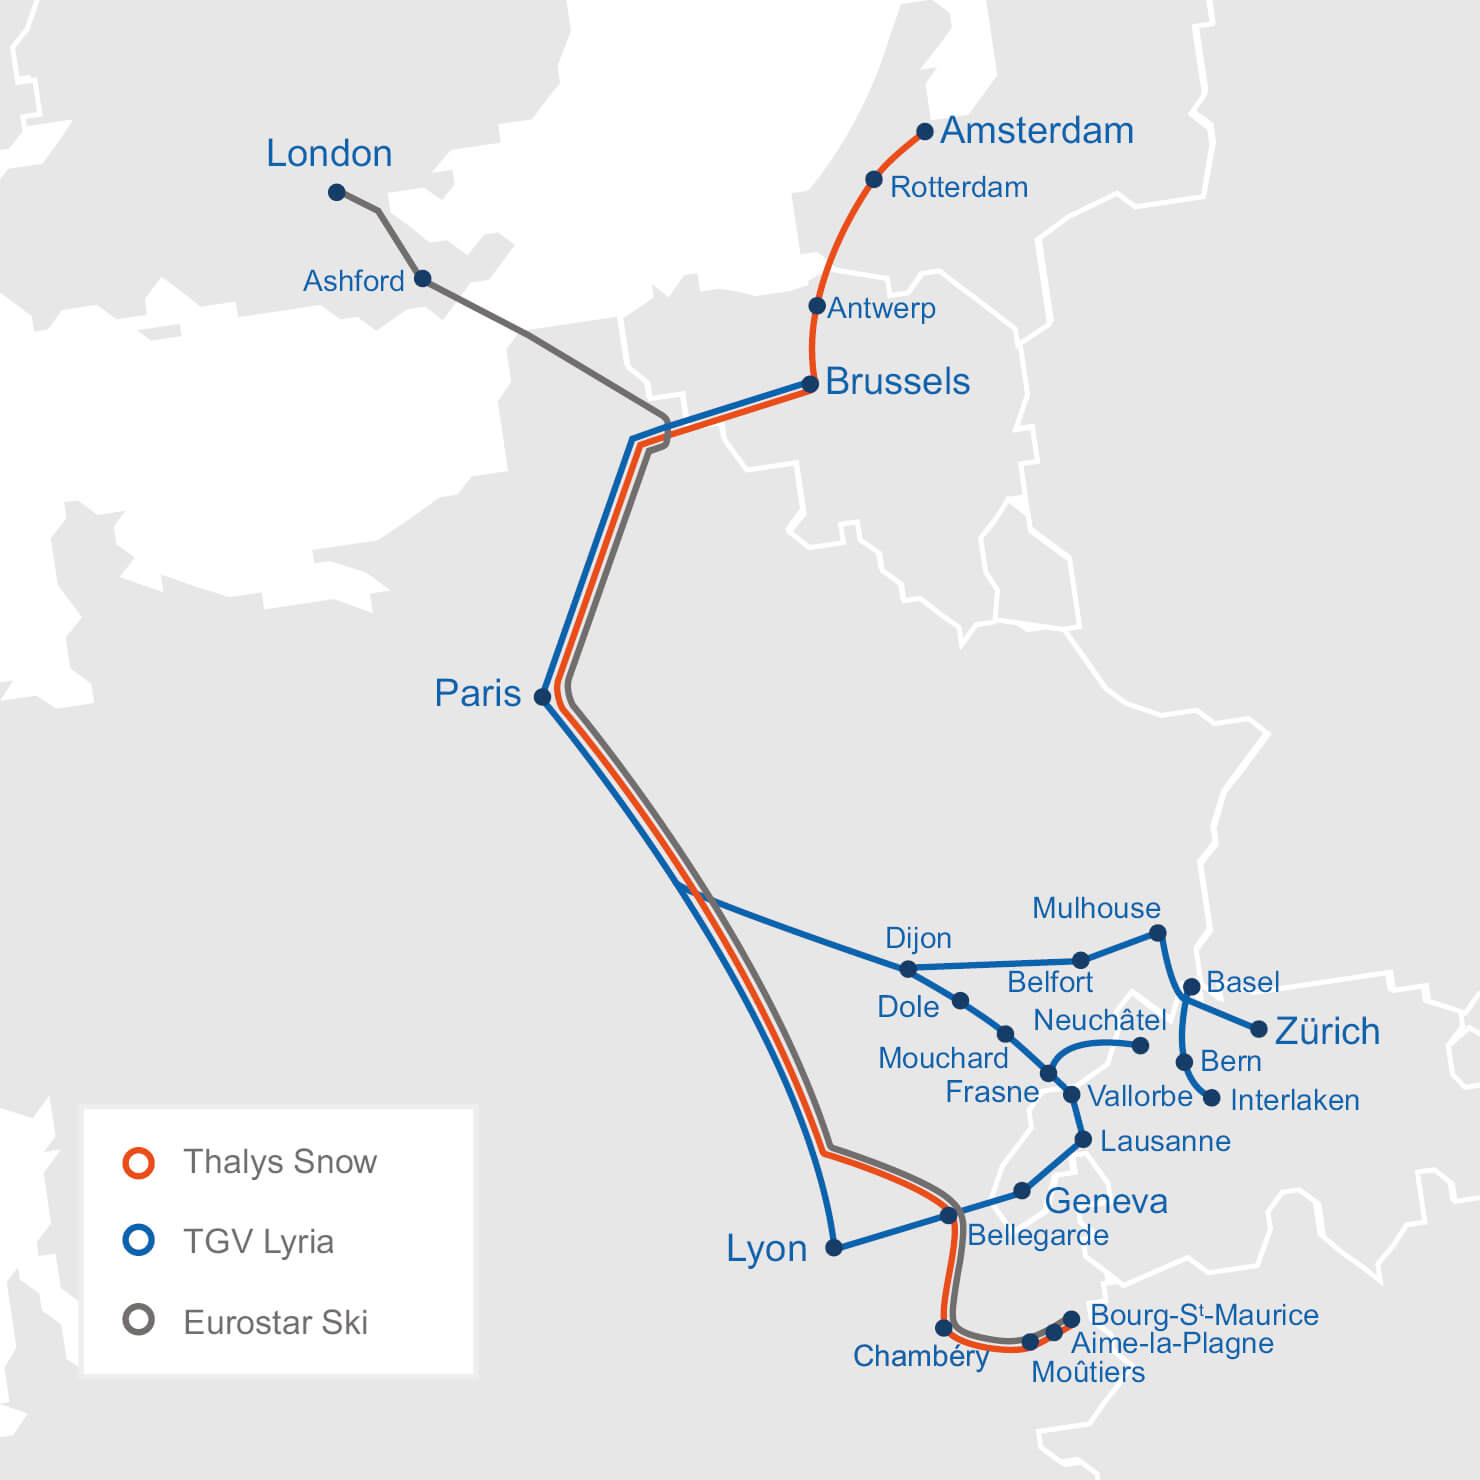 Destinations served by Thalys Snow, Eurostar Ski and TGV Lyria